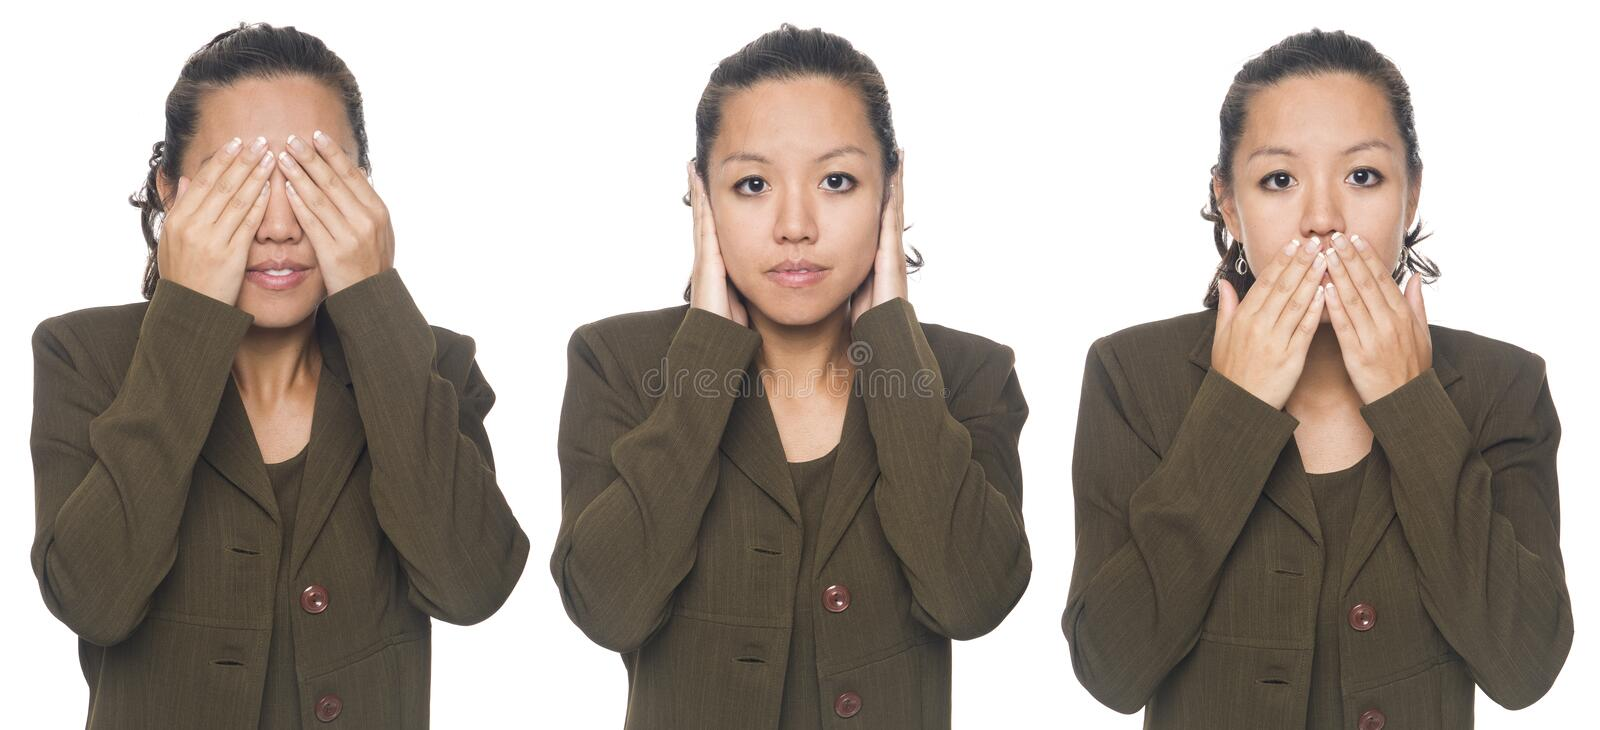 Download Businesswoman - no evil stock image. Image of employee - 6505543